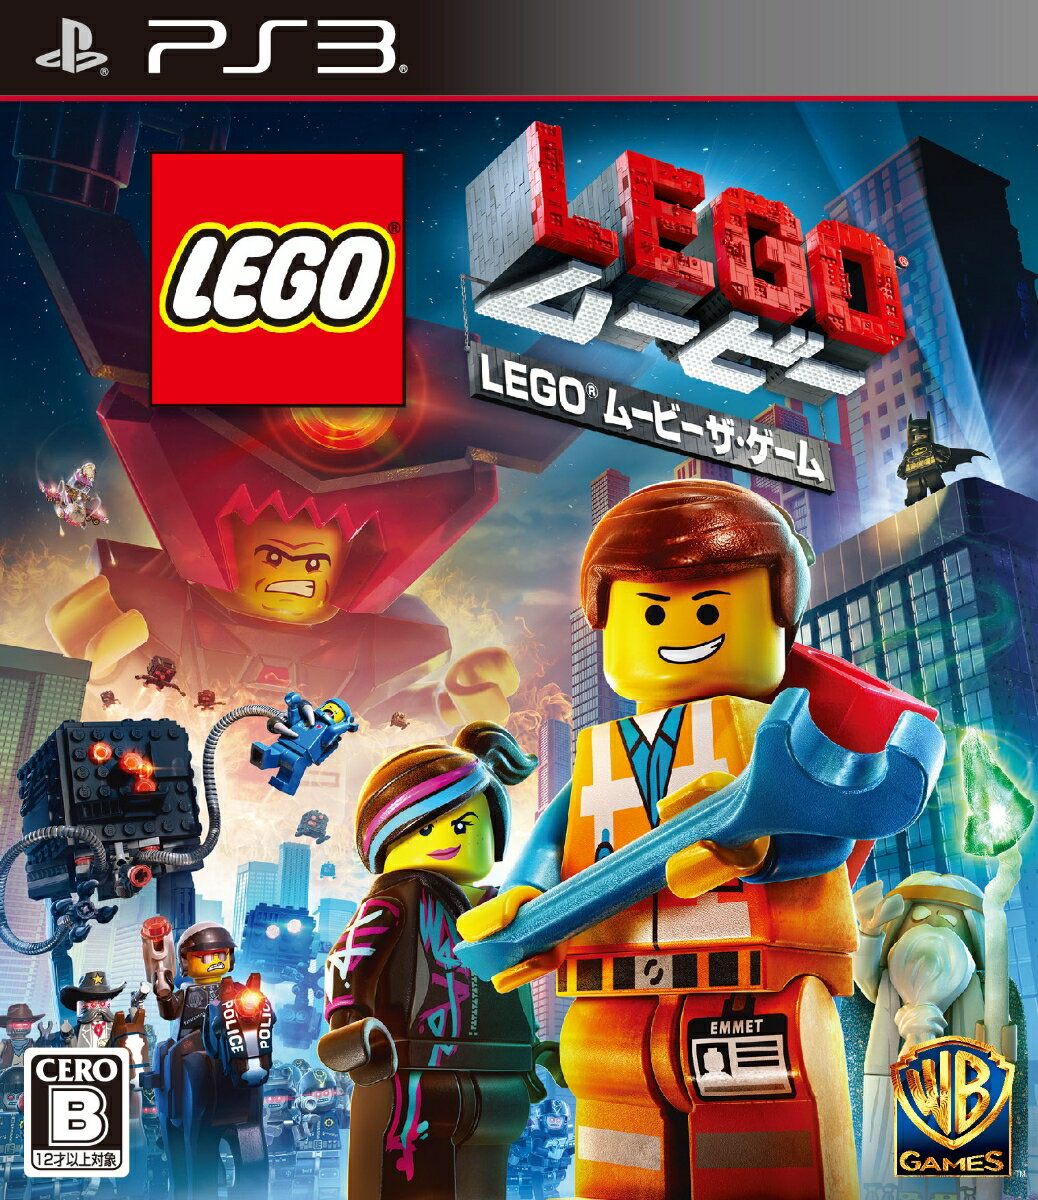 LEGO(R) ムービー ザ・ゲーム PS3版